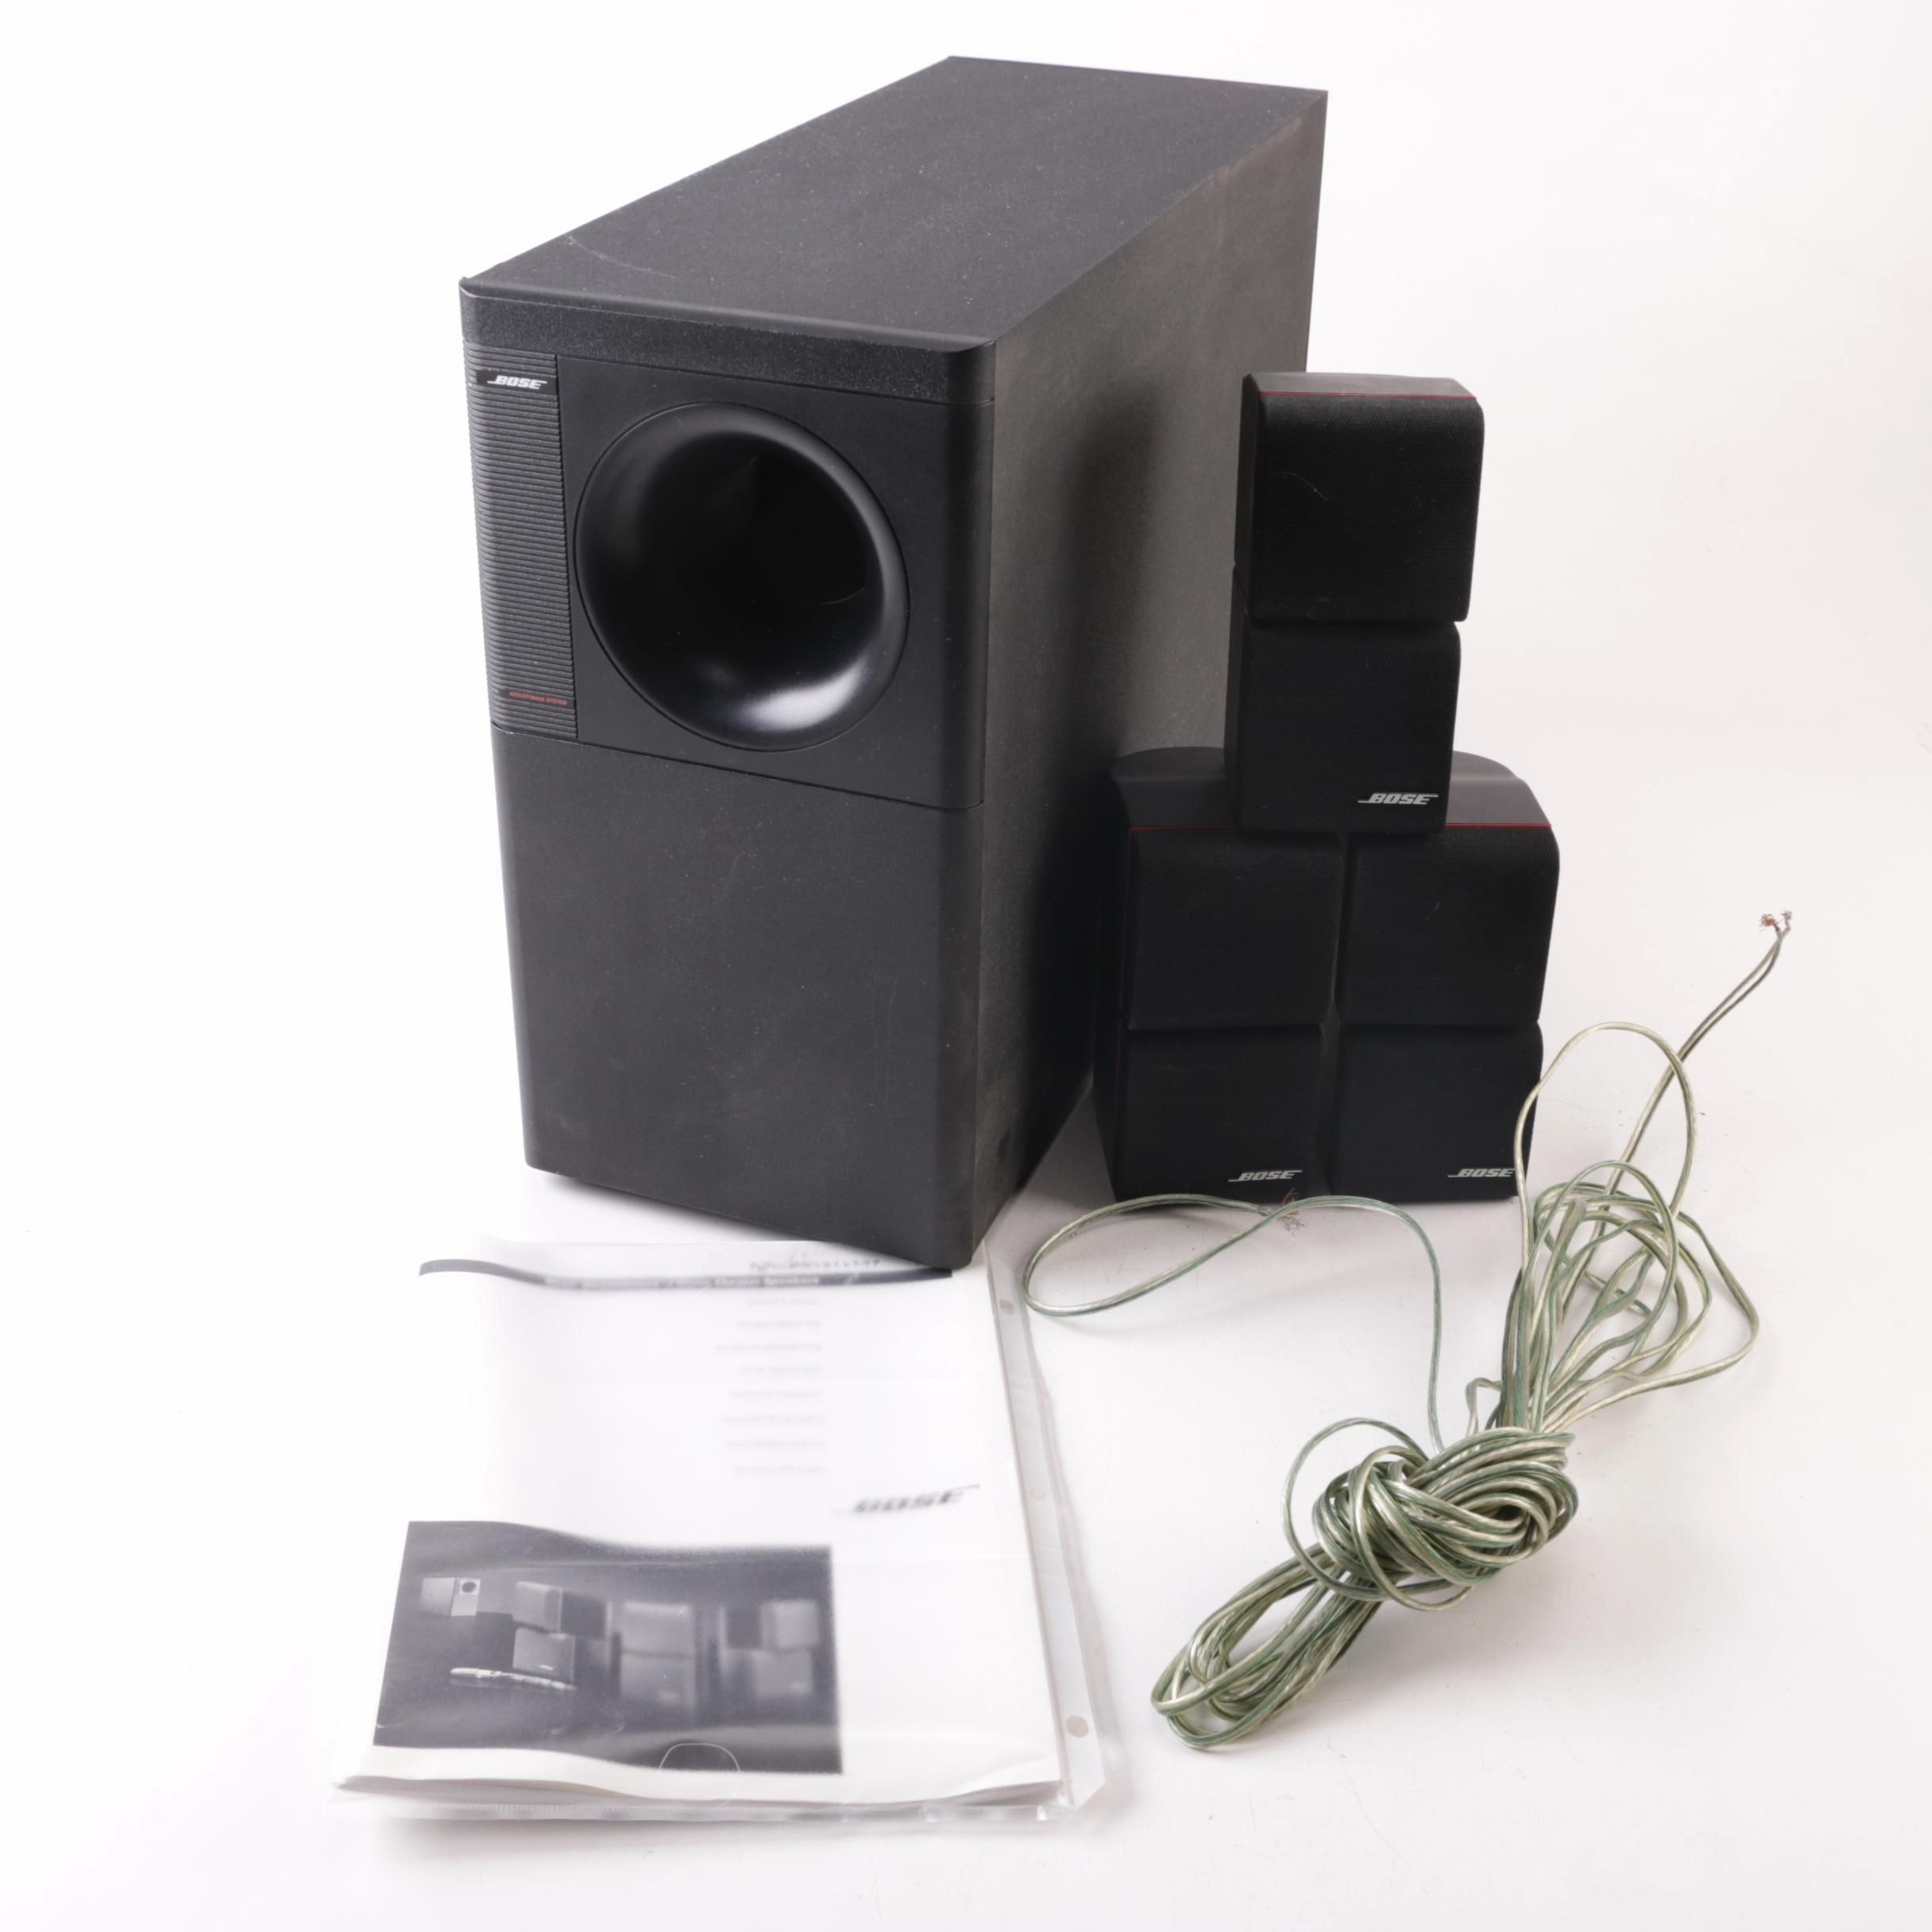 bose acoustimass 7 home theatre speaker system ebth rh ebth com Bose Acoustimass 9 Speaker System Bose Acoustimass 7 Specs